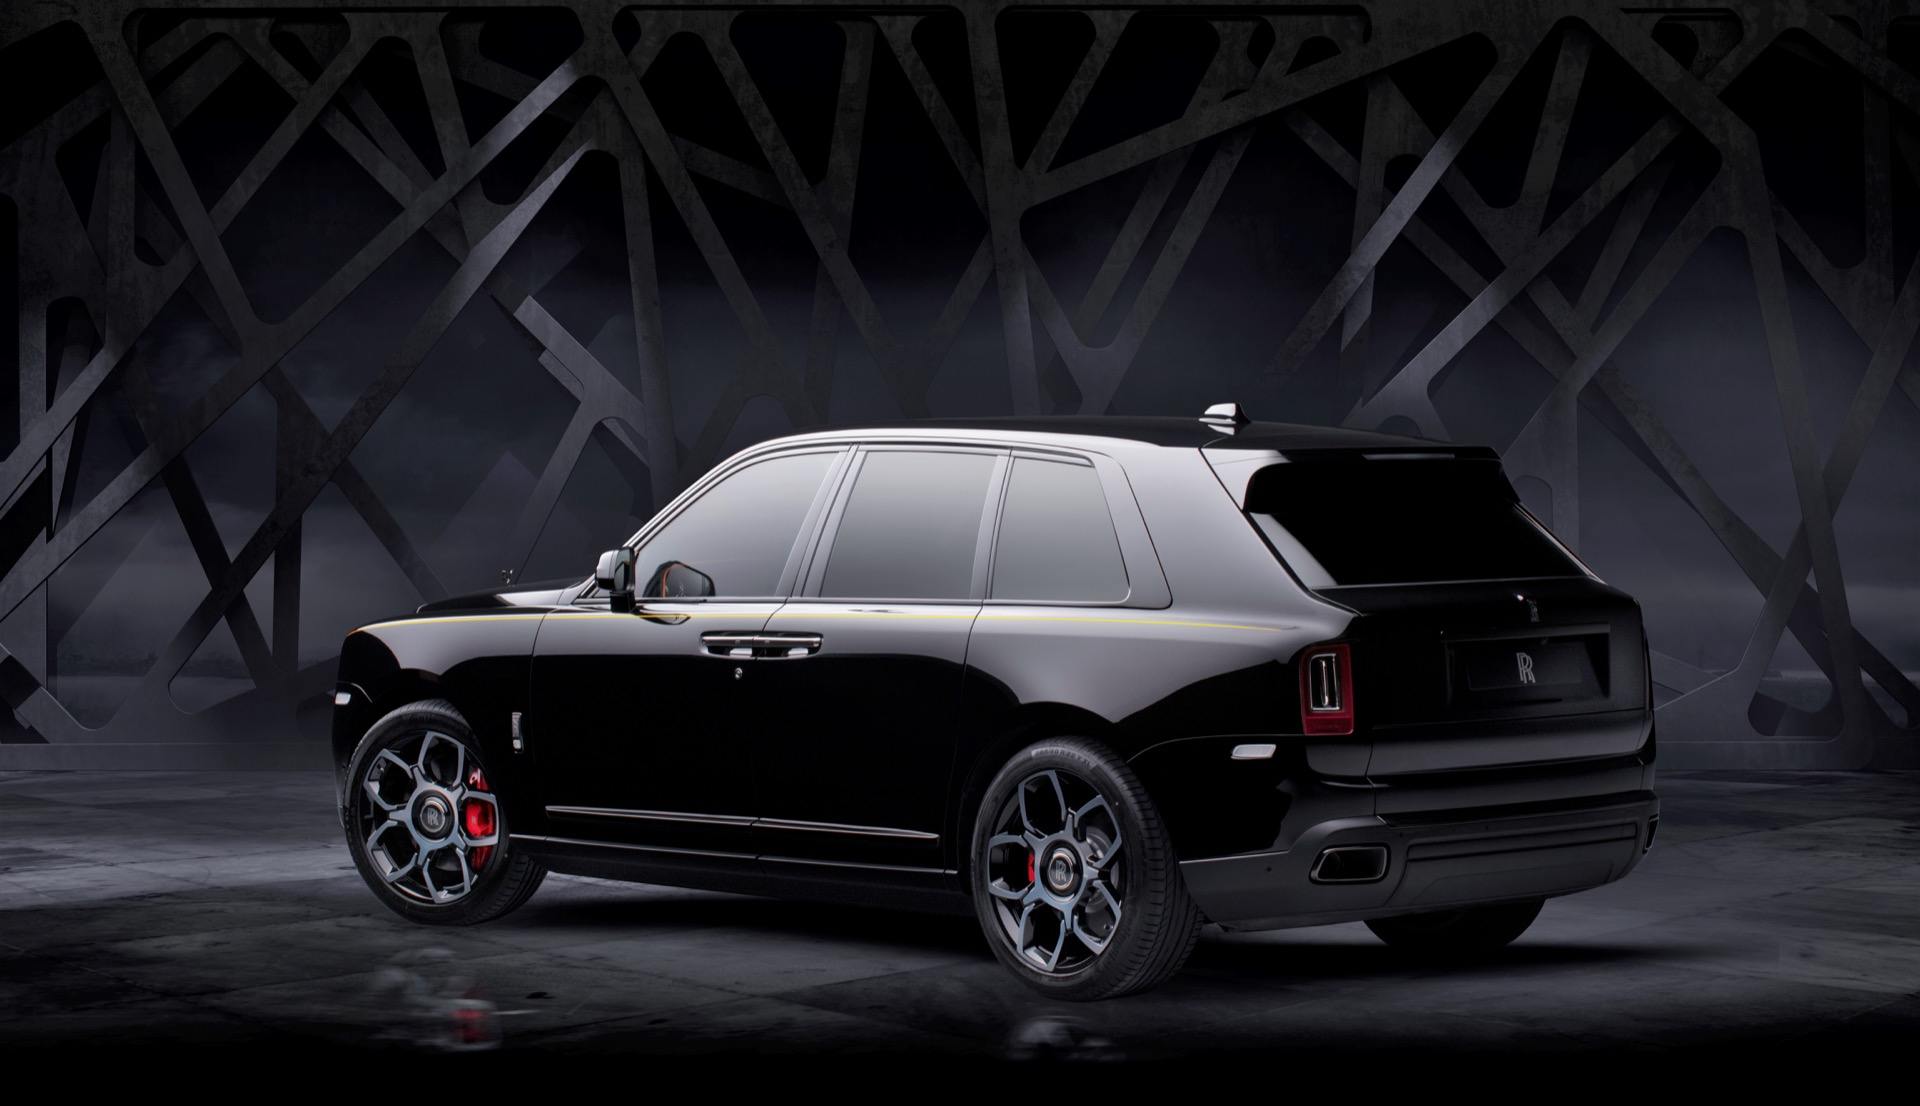 More Powerful Rolls Royce Cullinan Black Badge Dark Modes The Luxury Suv